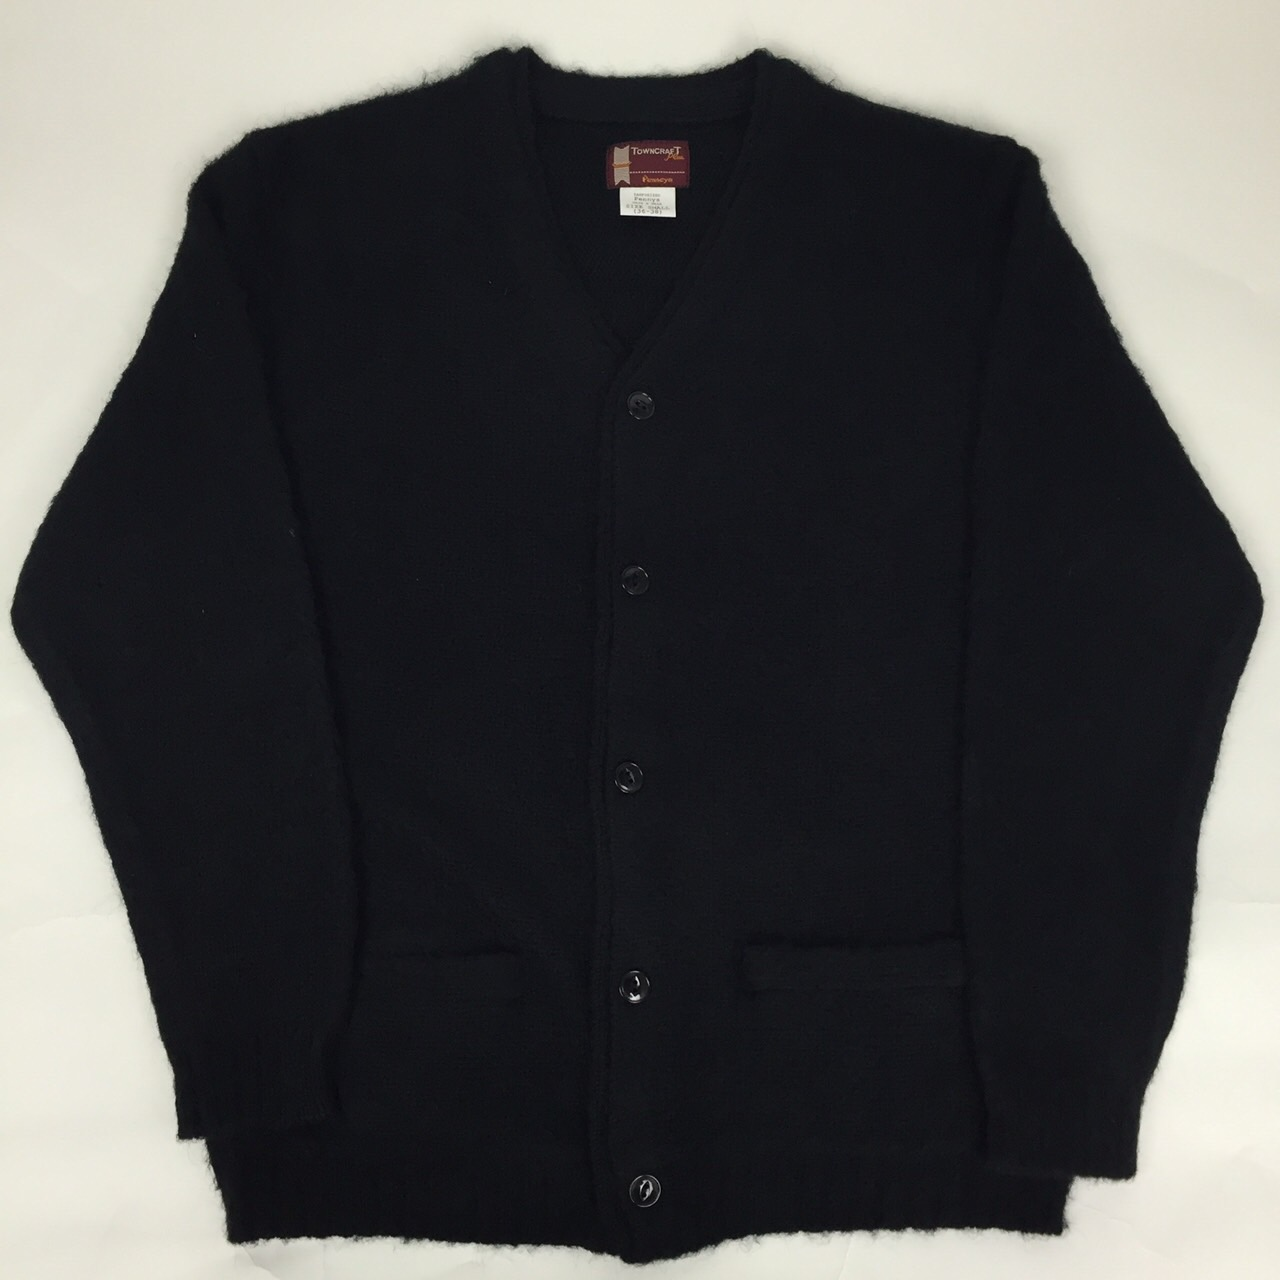 """ Town Craft / Mohair Cardigan \""_b0121563_18145138.jpg"